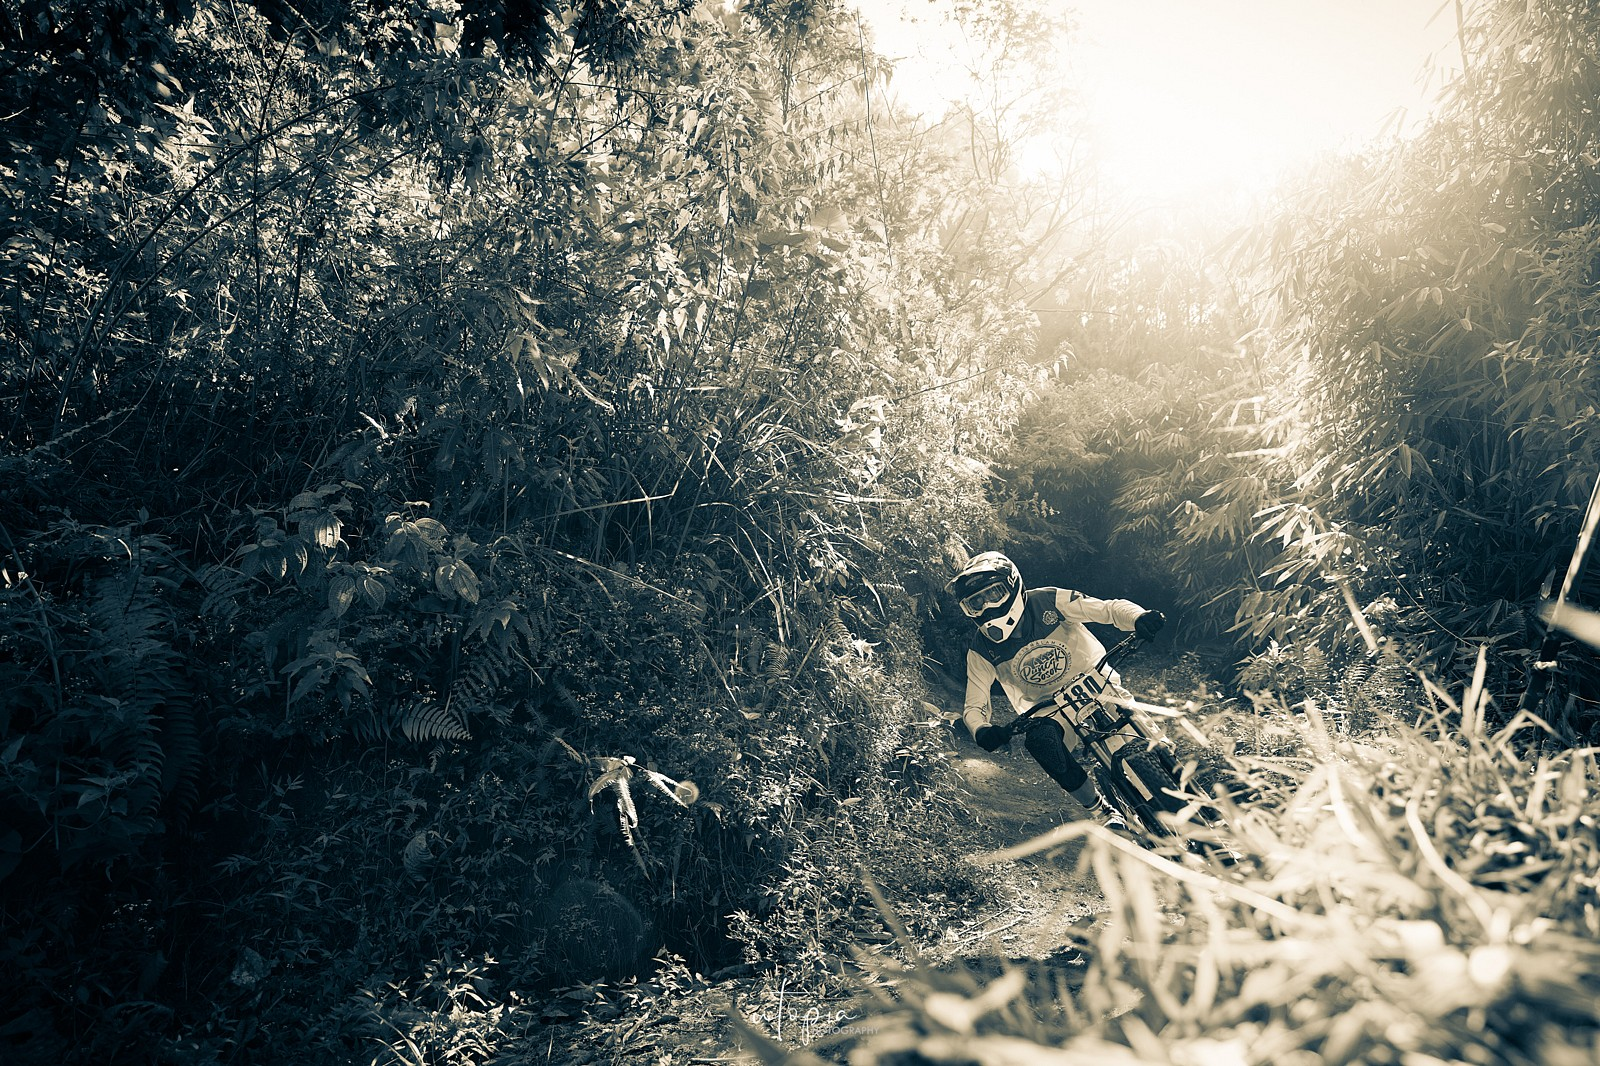 Out of the tunnel - utopiaarch - Mountain Biking Pictures - Vital MTB